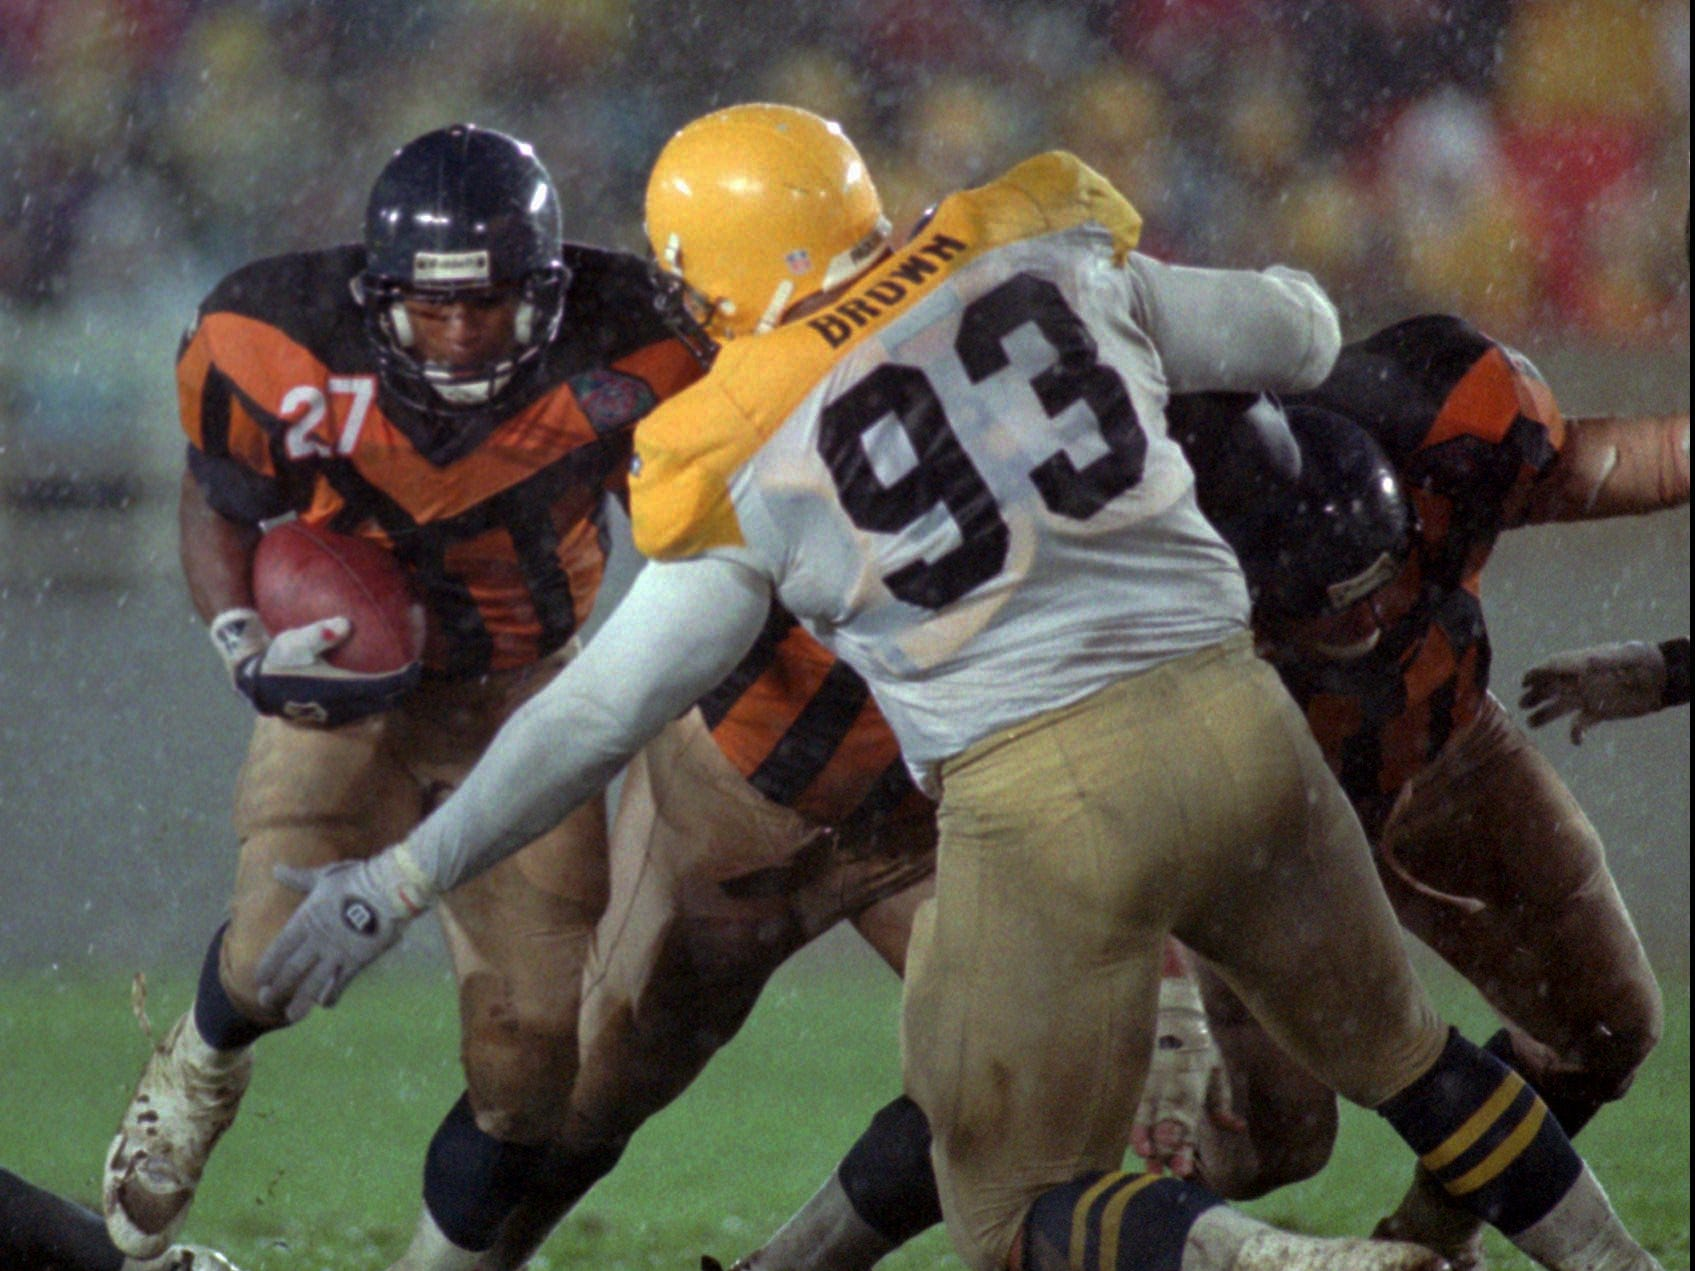 Is this 1994 Packers-Bears game the matchup of the worst throwback uniforms ever? Maybe.